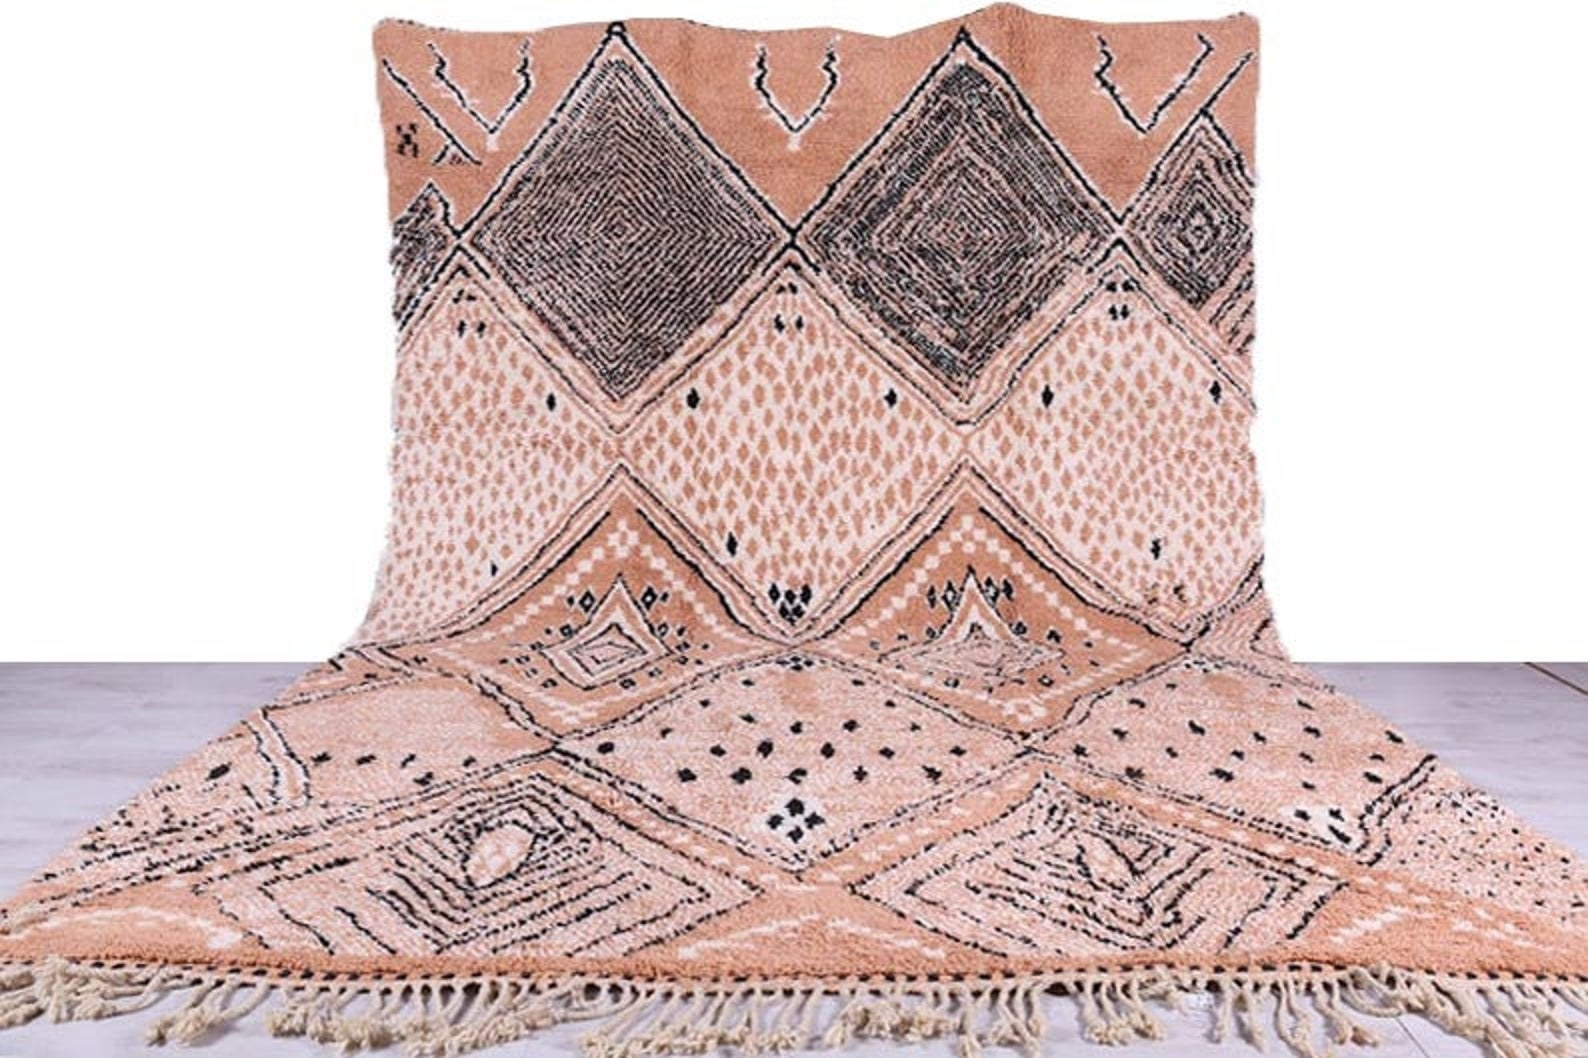 The large rectangular rug with light pink, black, and cream diamonds throughout and dark beige tassels